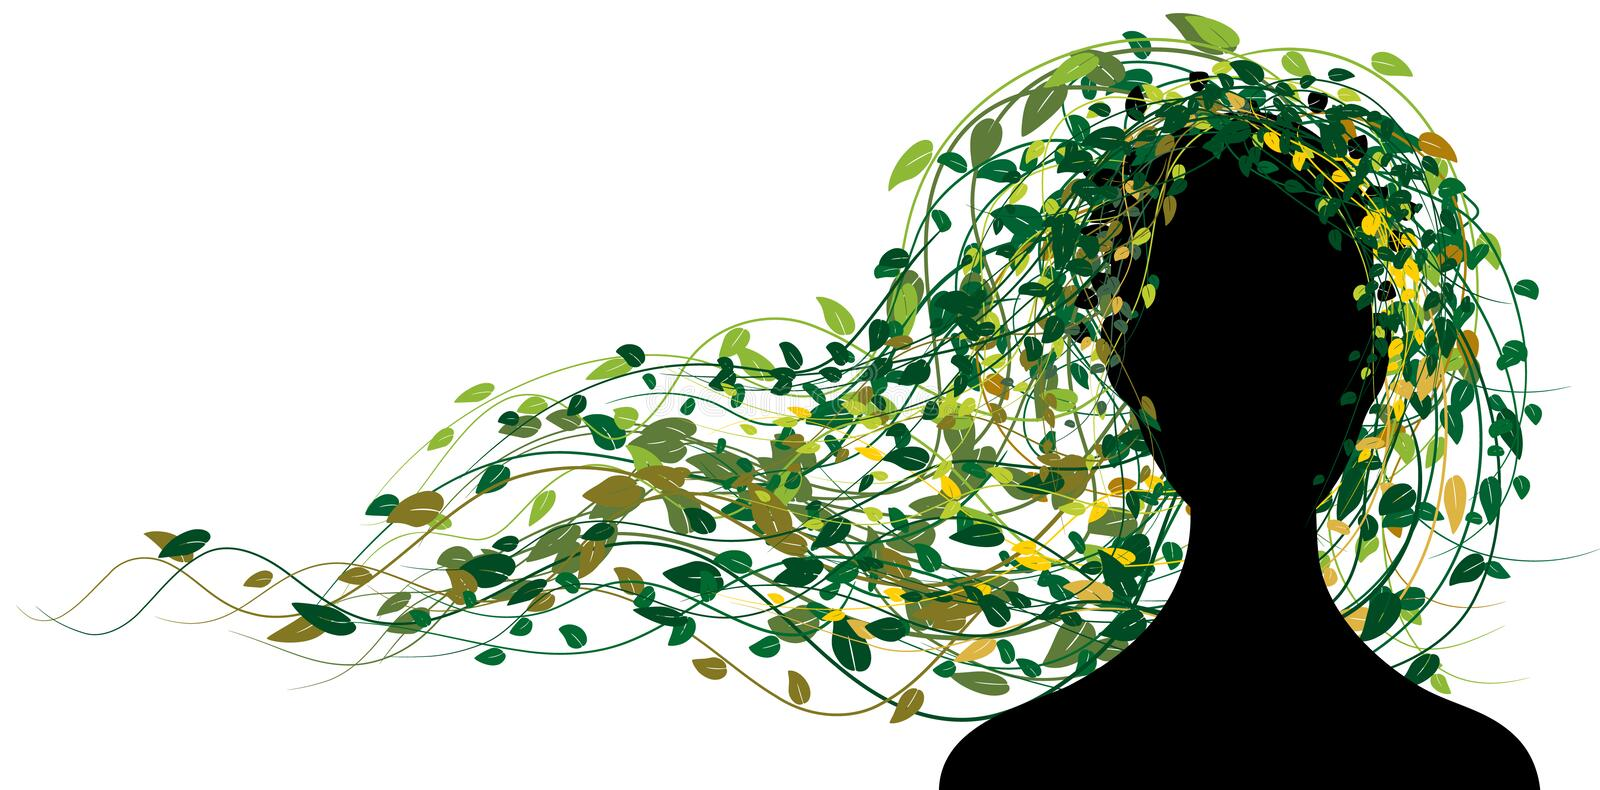 Download Silhouette Of Woman With Hair From Leaves Royalty Free Stock Photography - Image: 4807427